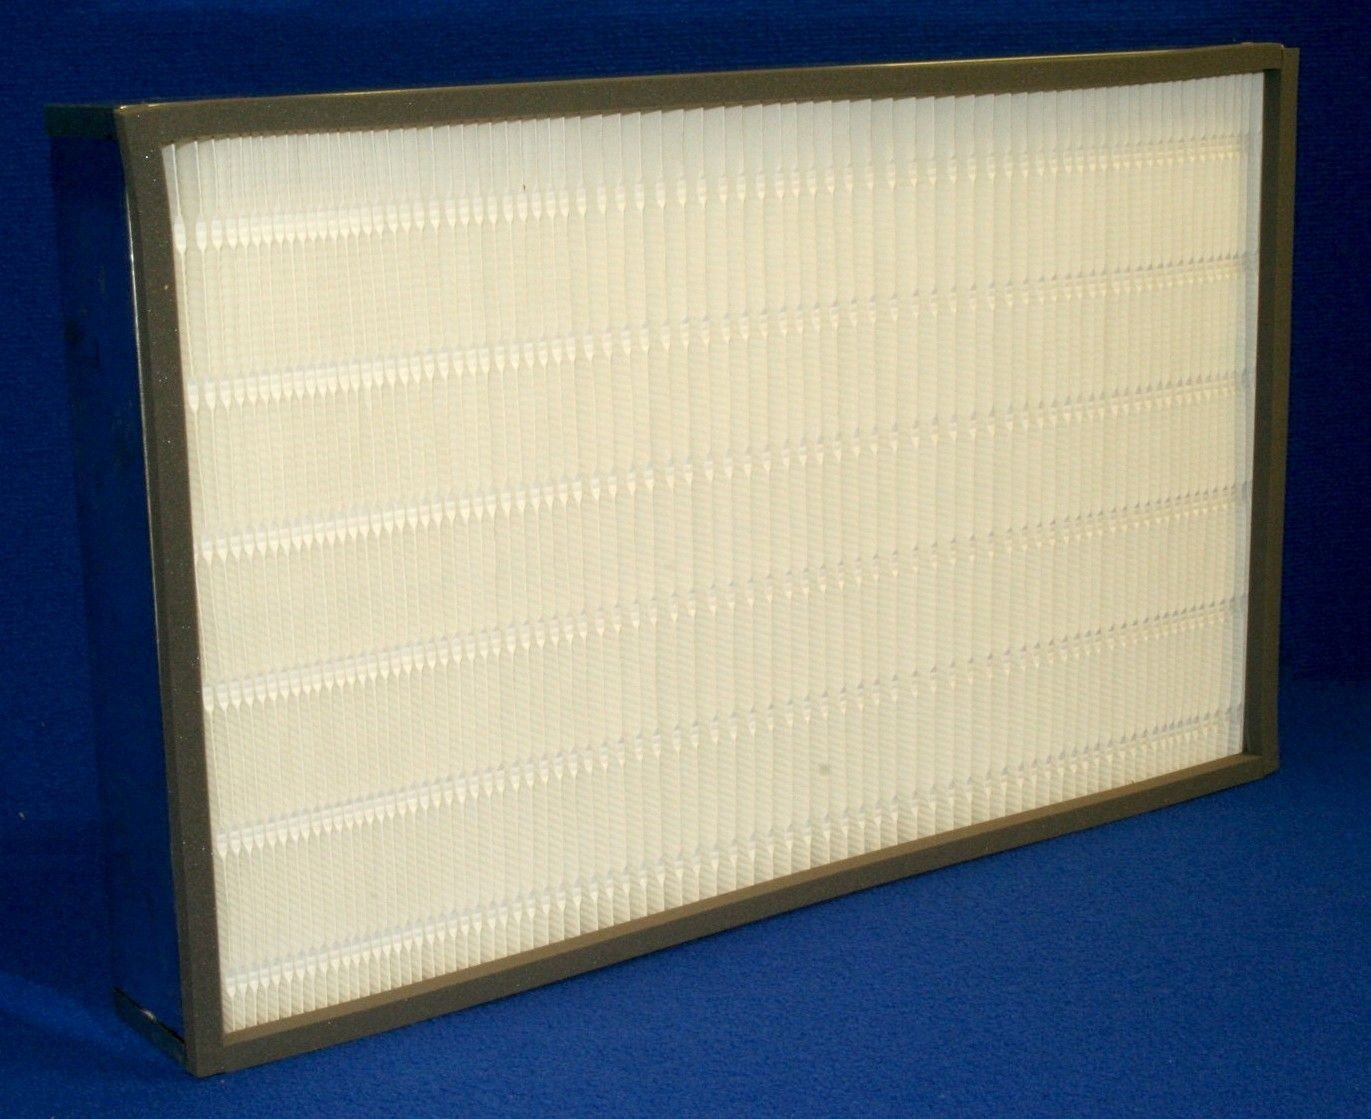 Tennant Dust Panel Filter 87341 For Tennant Models 8200, 8210, 5700 & T7 Industrial Sweeper